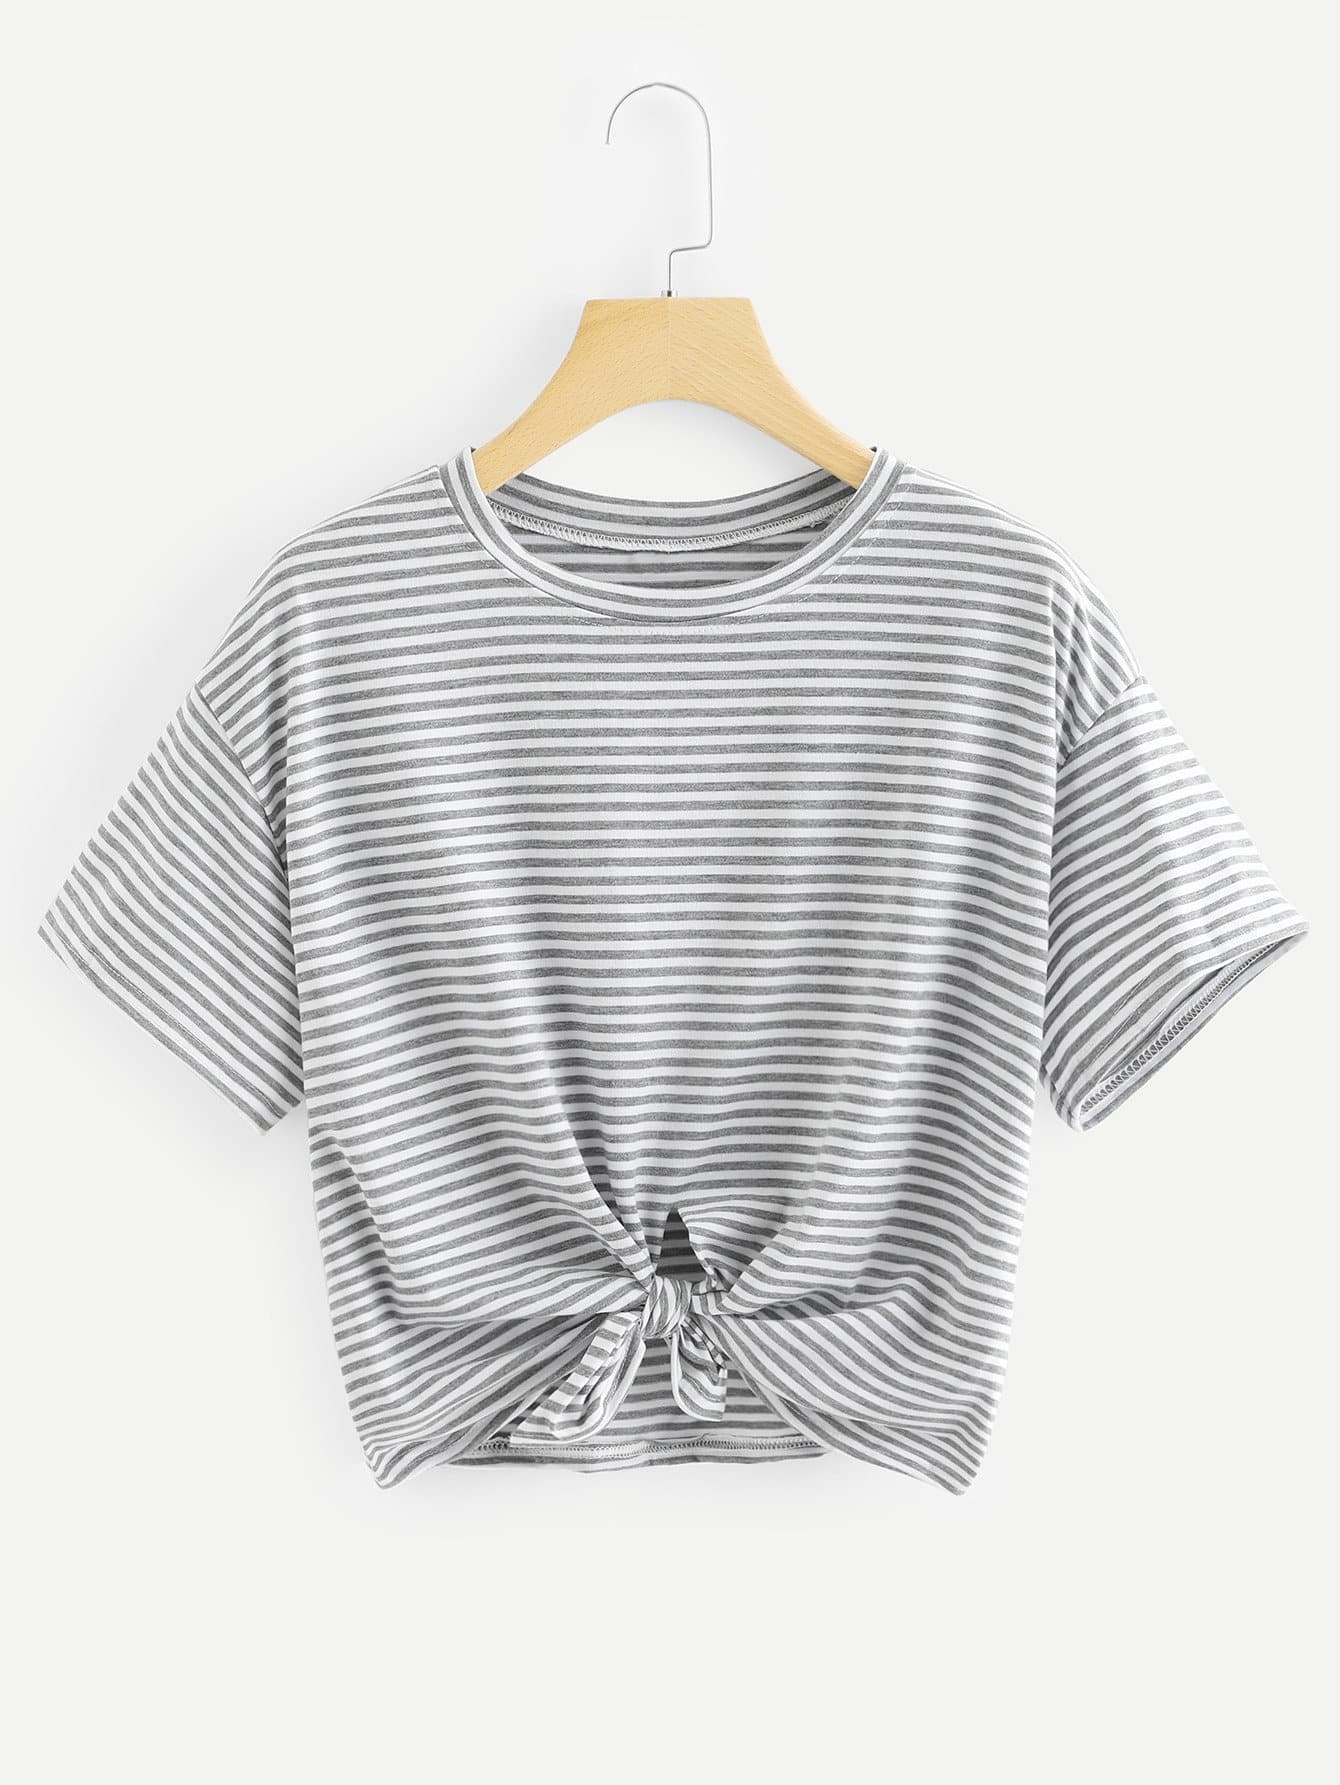 Knot Front Striped Tee front